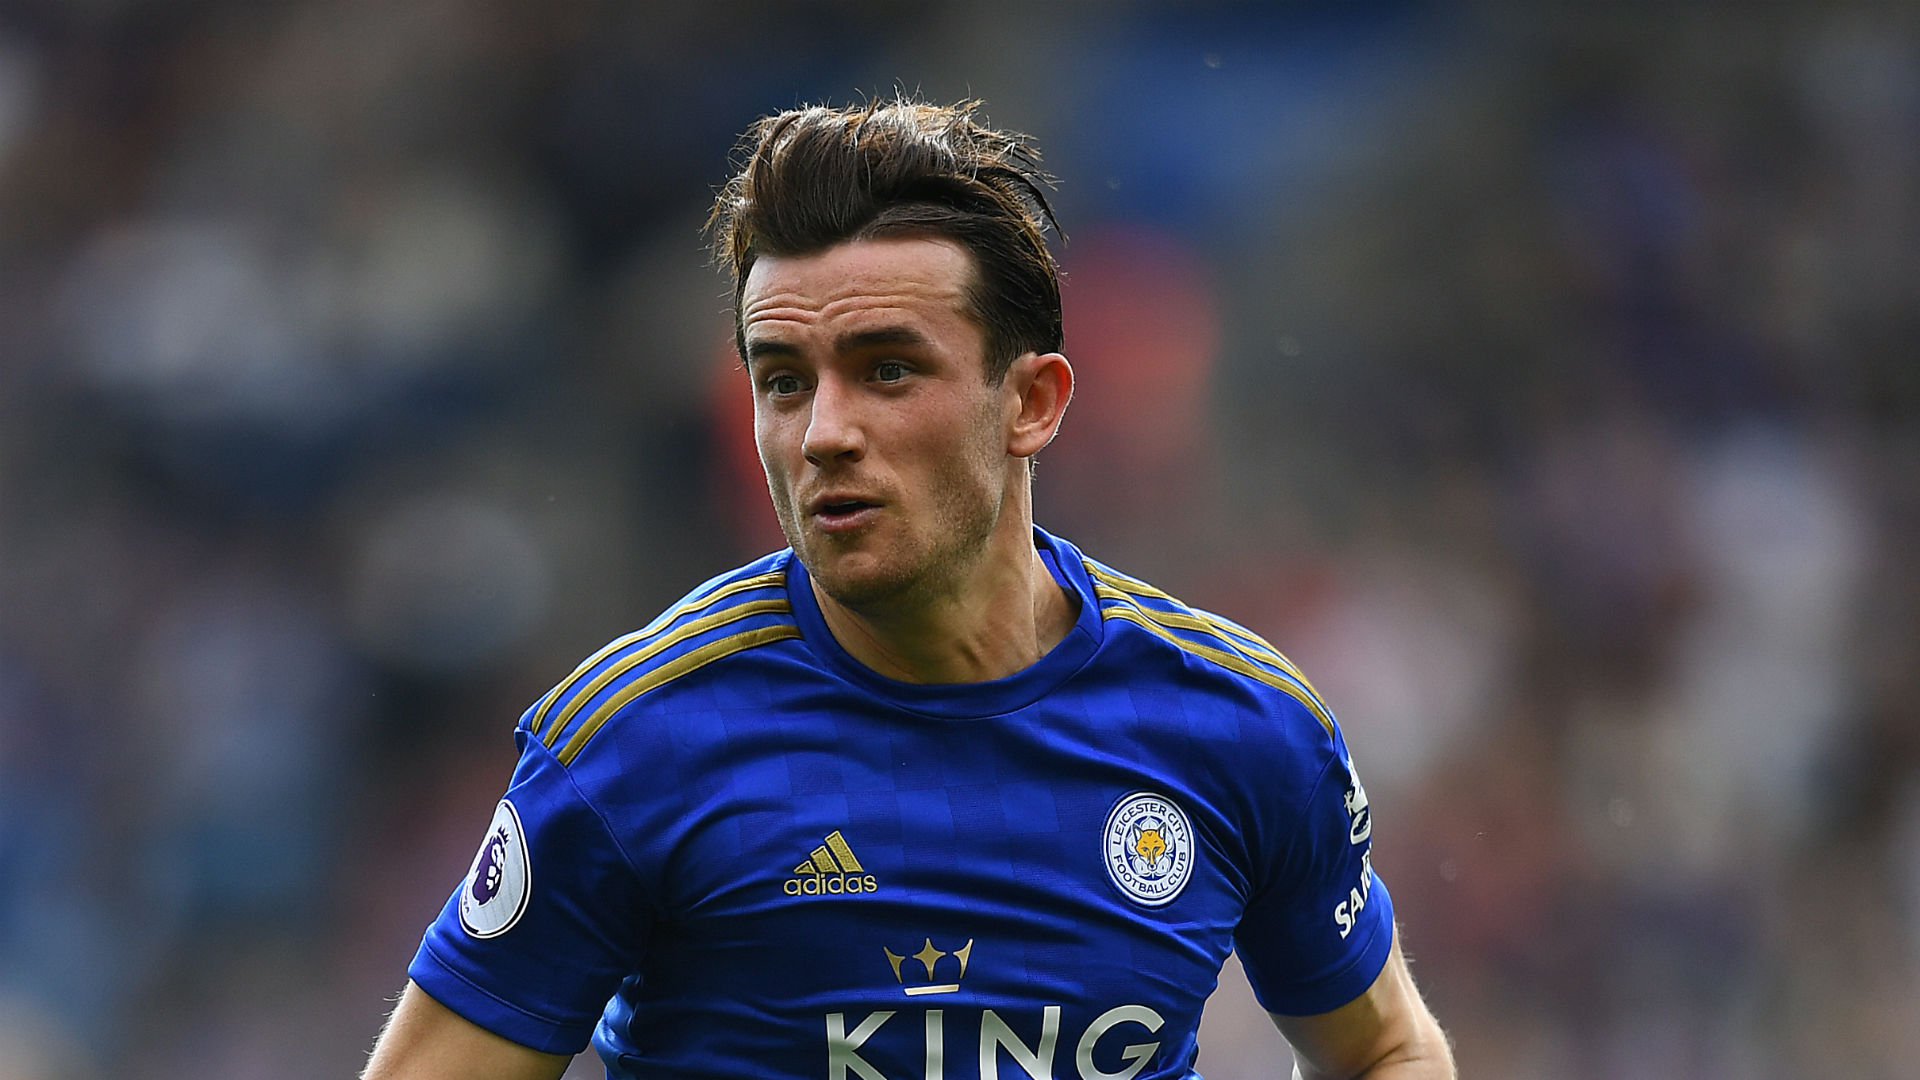 Chilwell in, Elneny out: Arsenal legend Wright picks transfers targets and drops flops